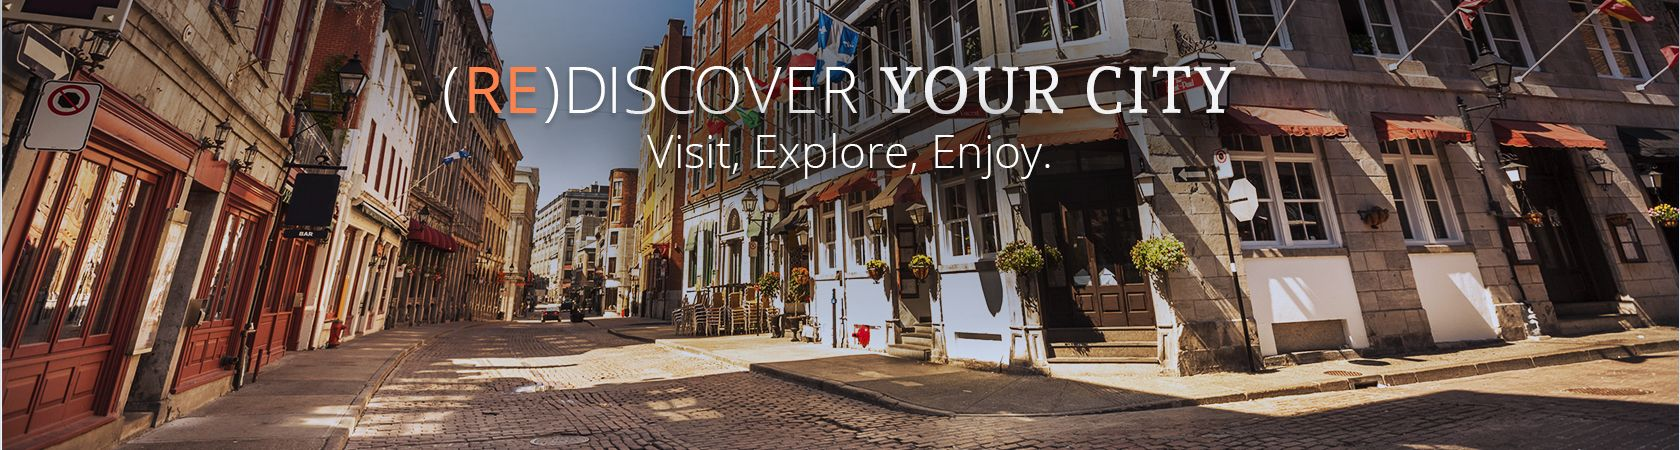 (Re)Discover Your City